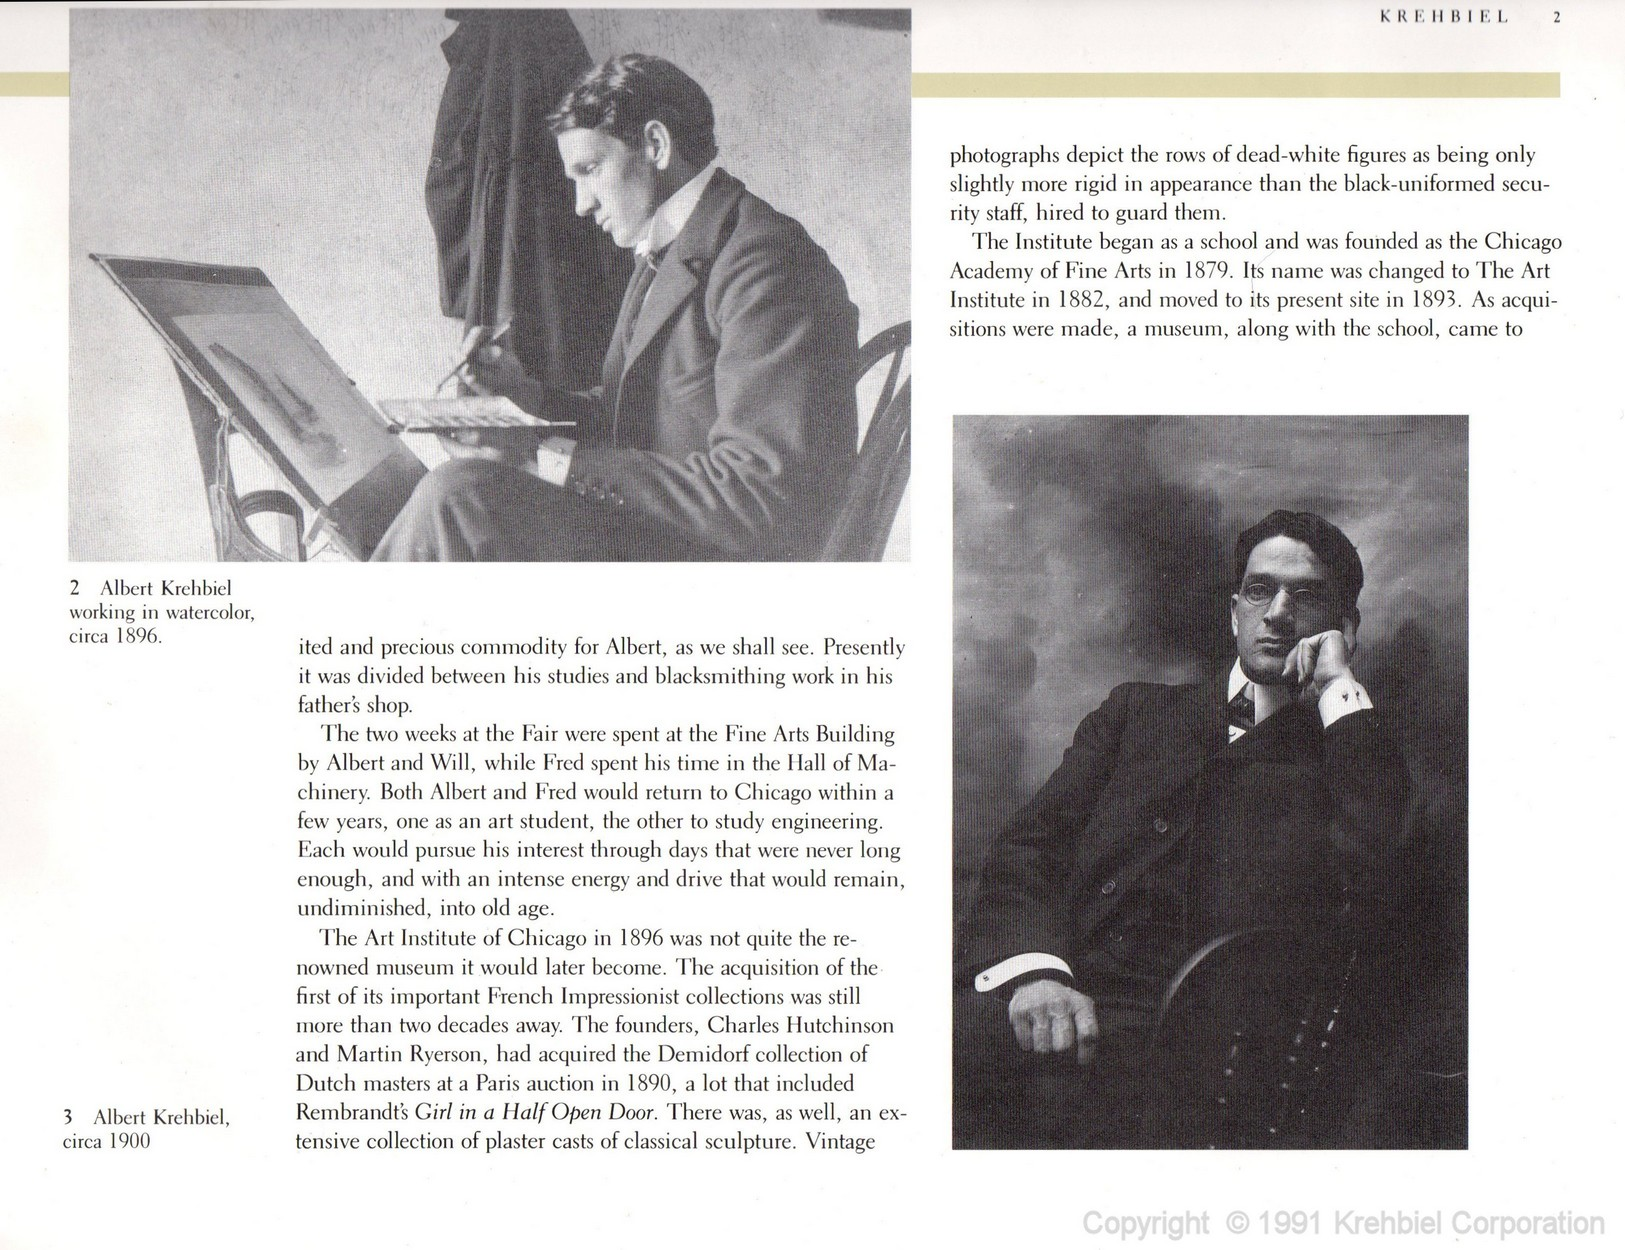 Page 2 of Krehbiel - Life and Works of an American Artist